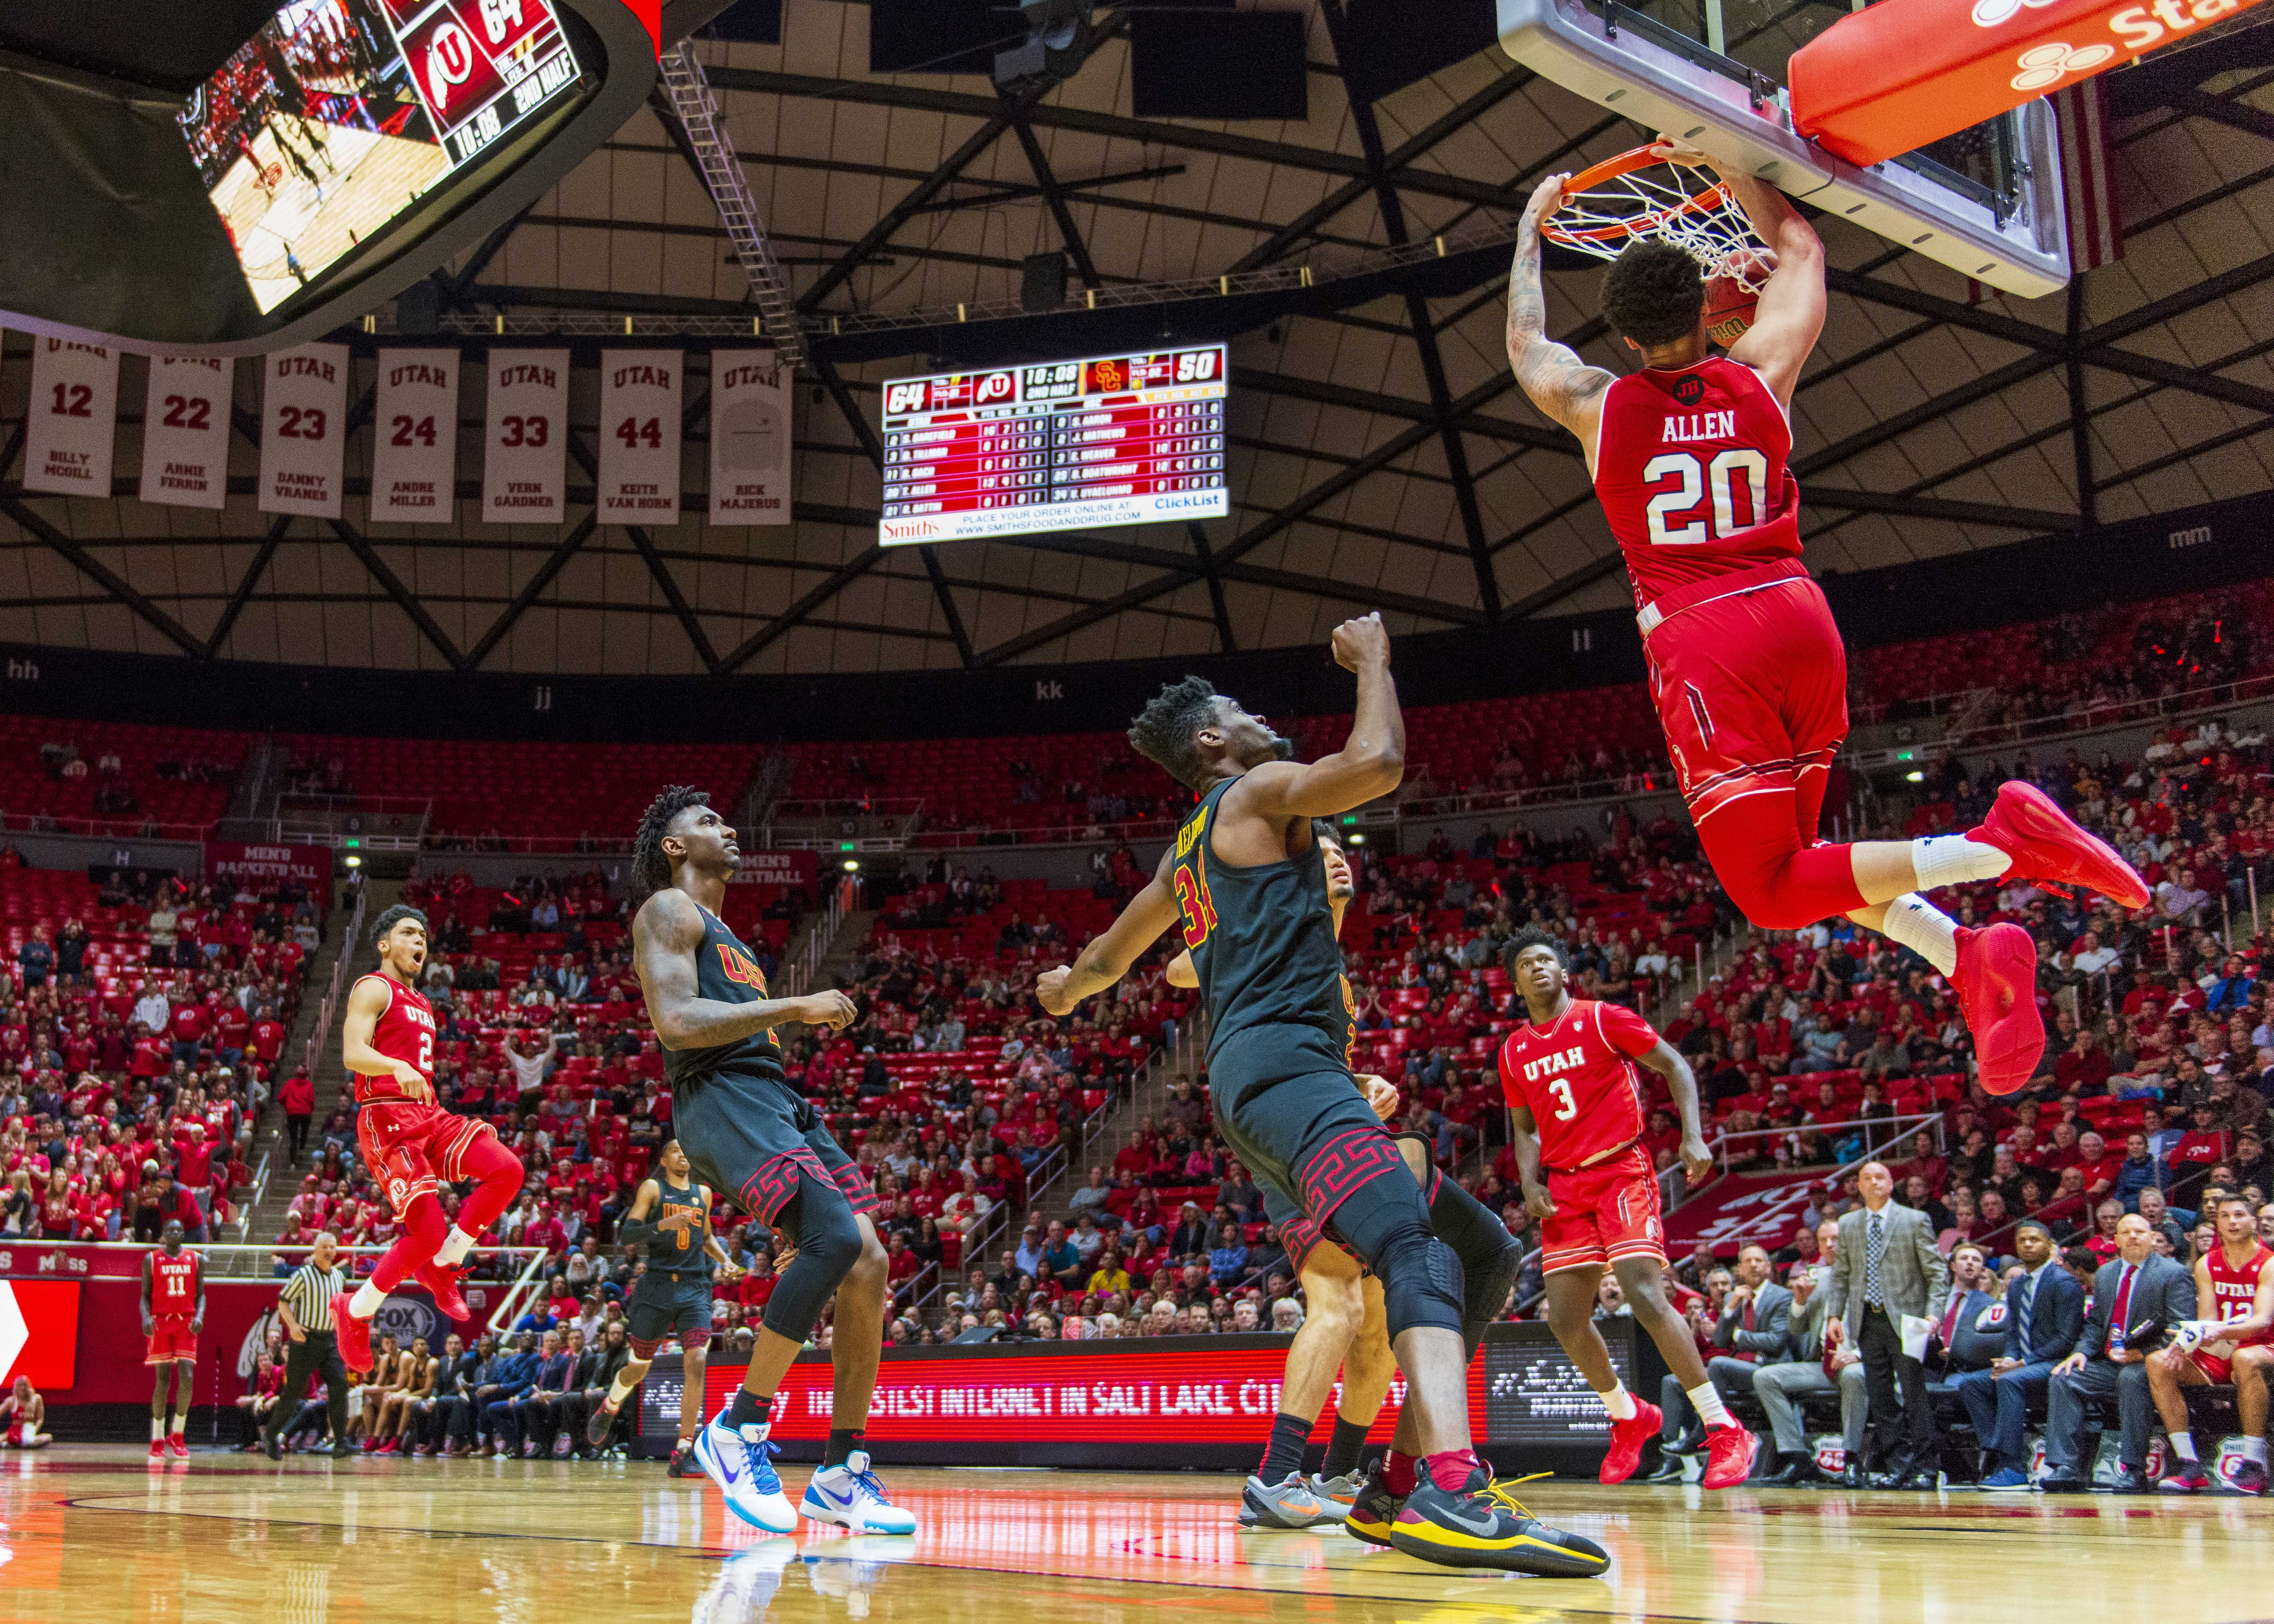 University of Utah freshman forward Timmy Allen (20) makes a slam dunk during an NCAA Basketball game vs. the USC Trojans at the Jon M. Huntsman Center in Salt Lake City, Utah on Thursday, March 7, 2019. (Photo by Kiffer Creveling | The Daily Utah Chronicle)